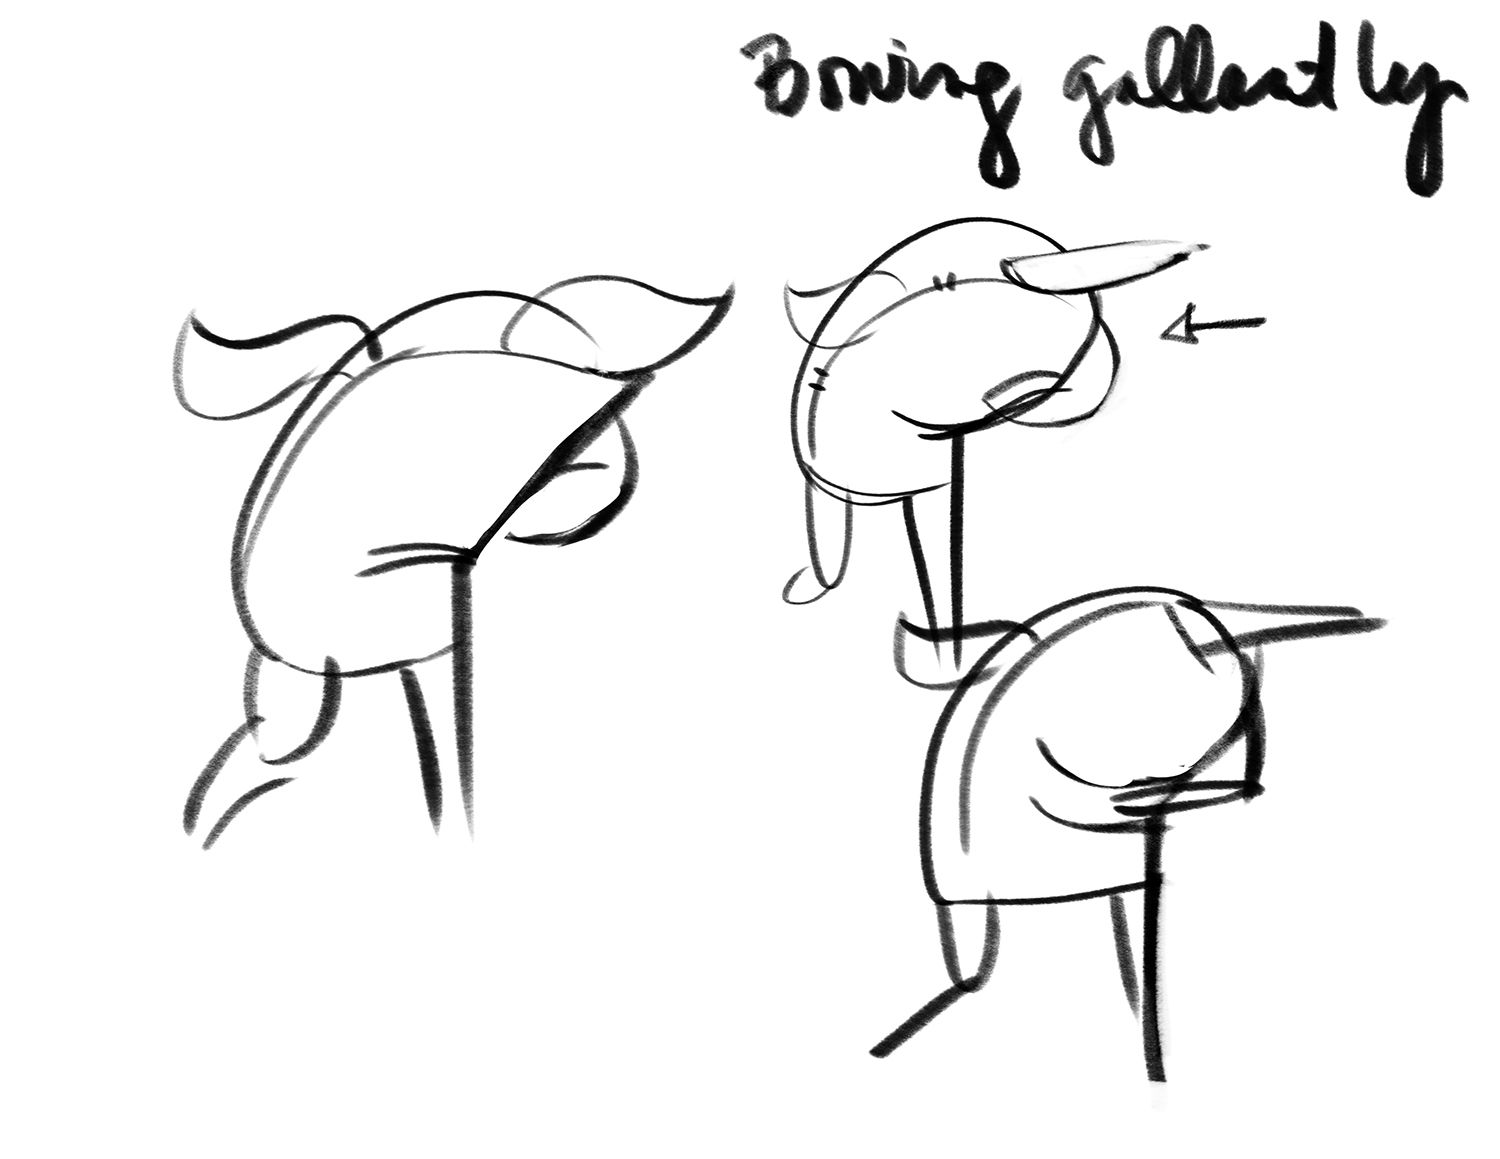 Bowing gallantly.jpg